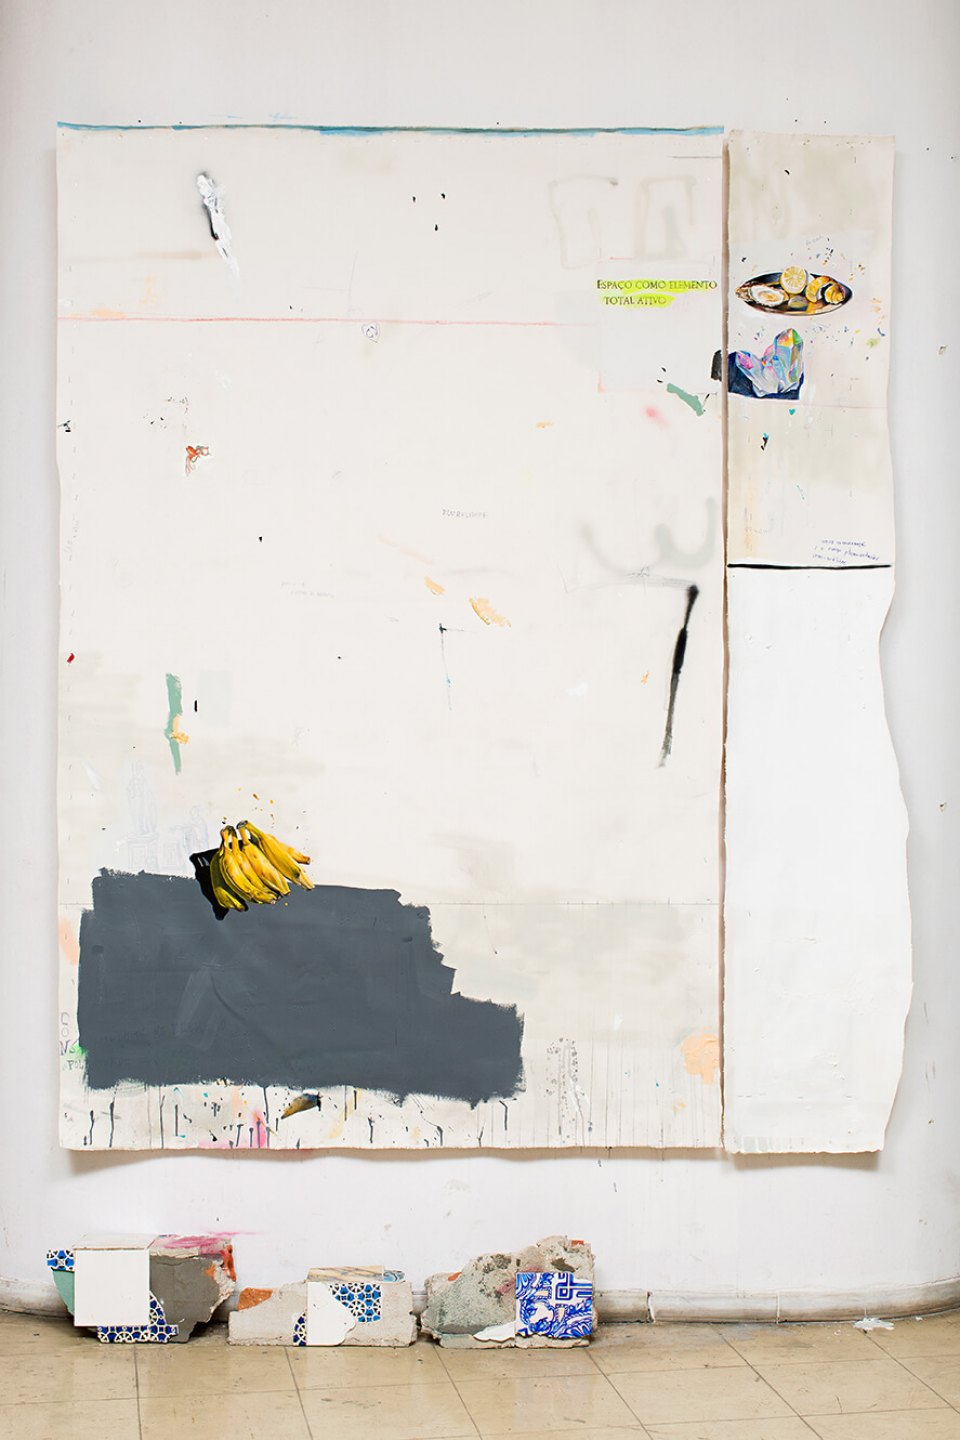 Paulo Nimer Pjota, <em>Bahia e Portugal, </em>2013, acrylic, syntetic enamel, pencil, pen and dirty on canvas,concrete and adobe, 2,52 × 0,32 cm (bricks included) - Mendes Wood DM